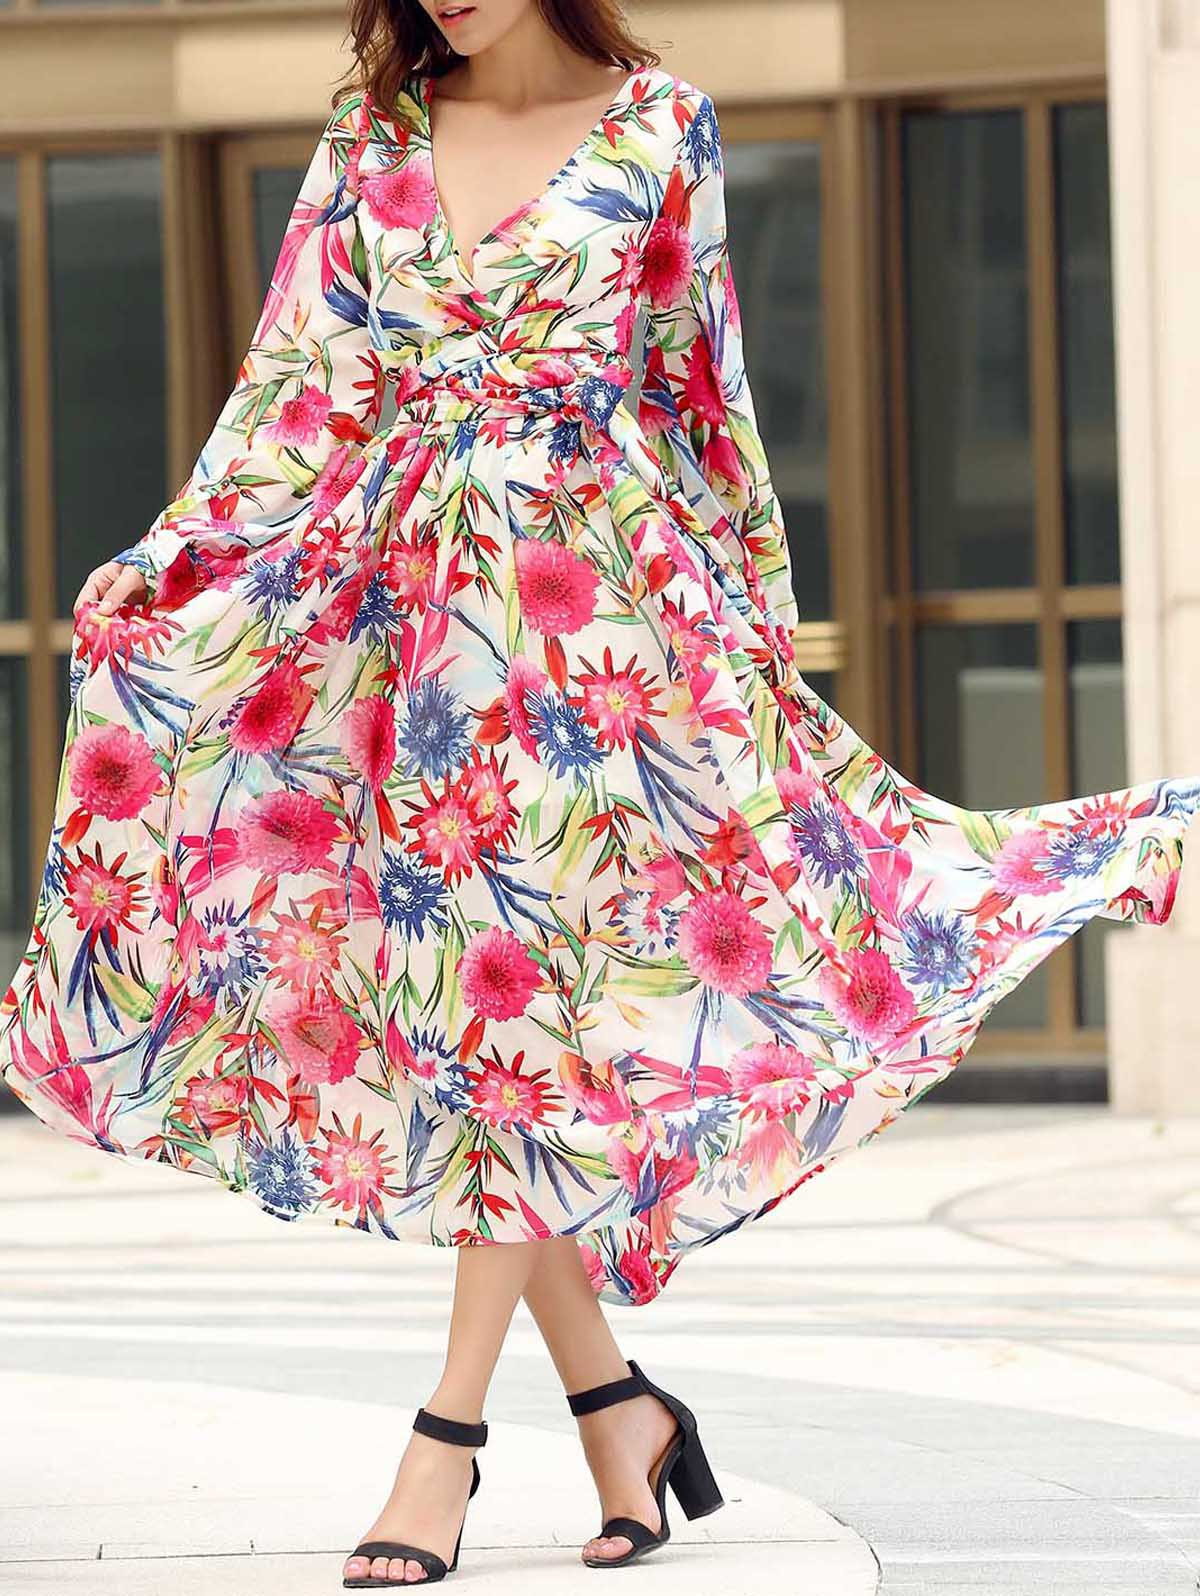 Bohemian Style V Neck Long Sleeve Colorful Floral Print Self Tie Belt Women's Dress - COLORMIX M